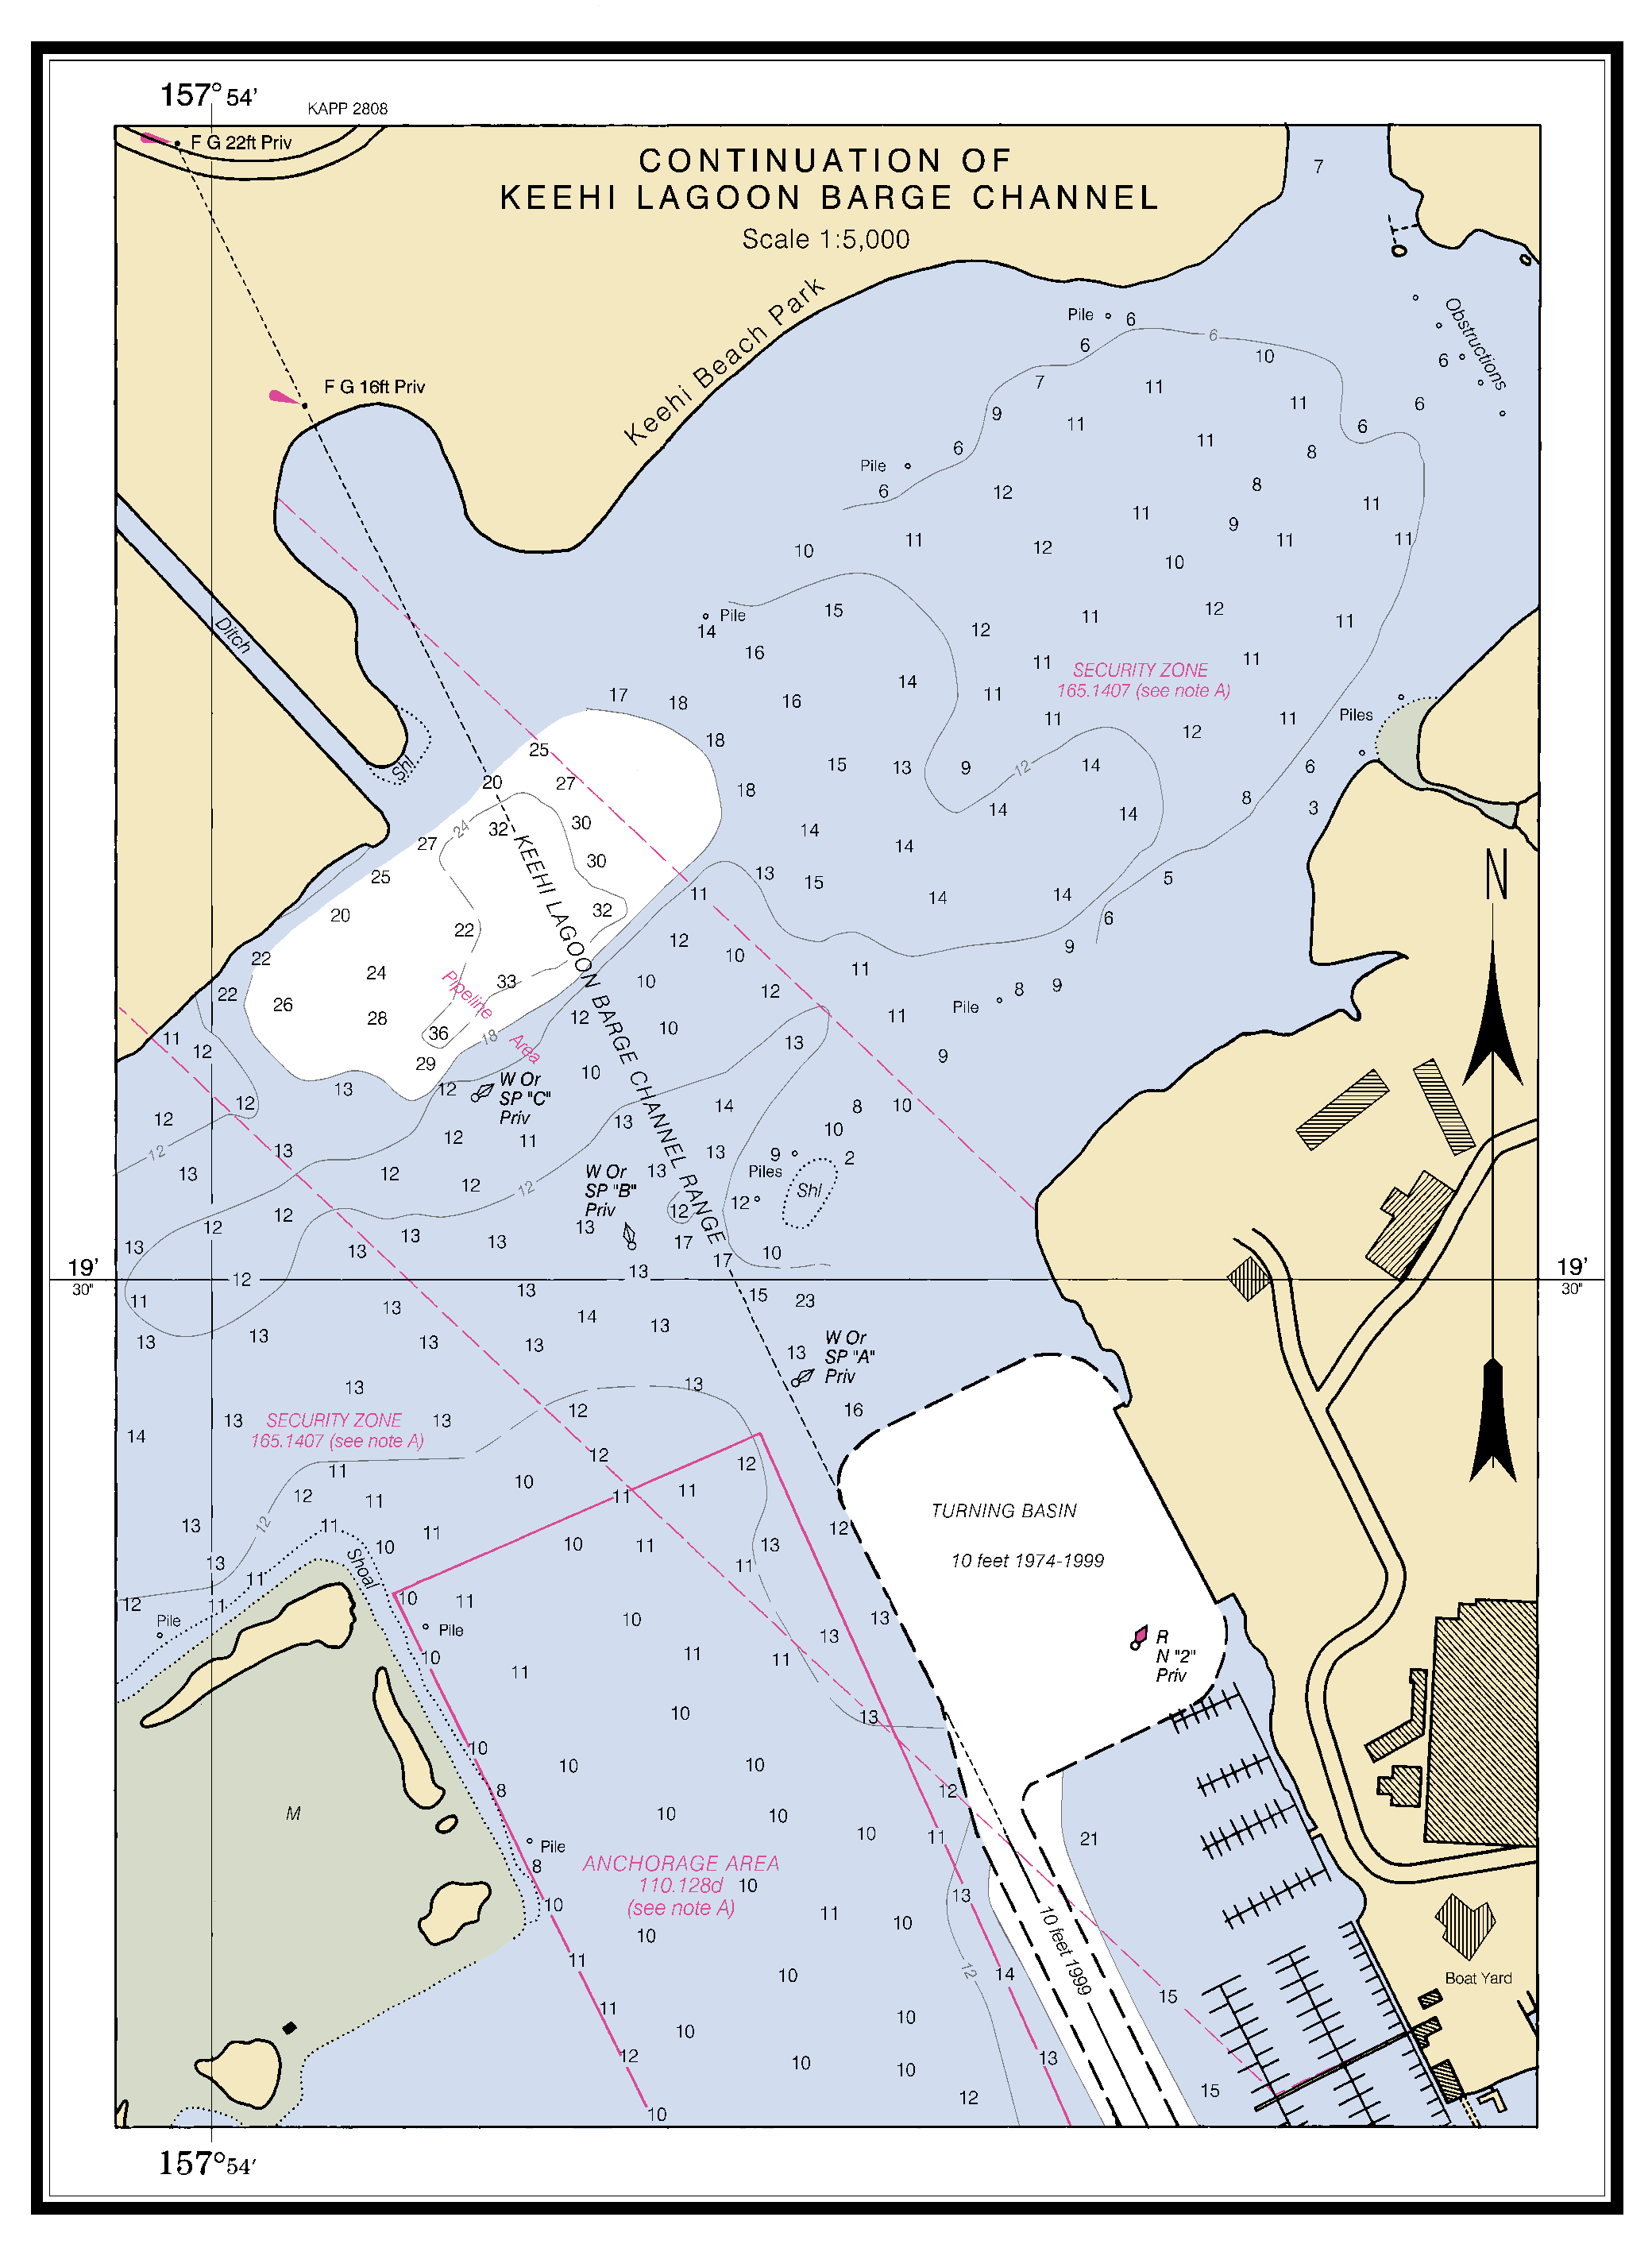 ... OF KEEHI LAGOON BARGE CHANNEL nautical chart - ΝΟΑΑ Charts - maps